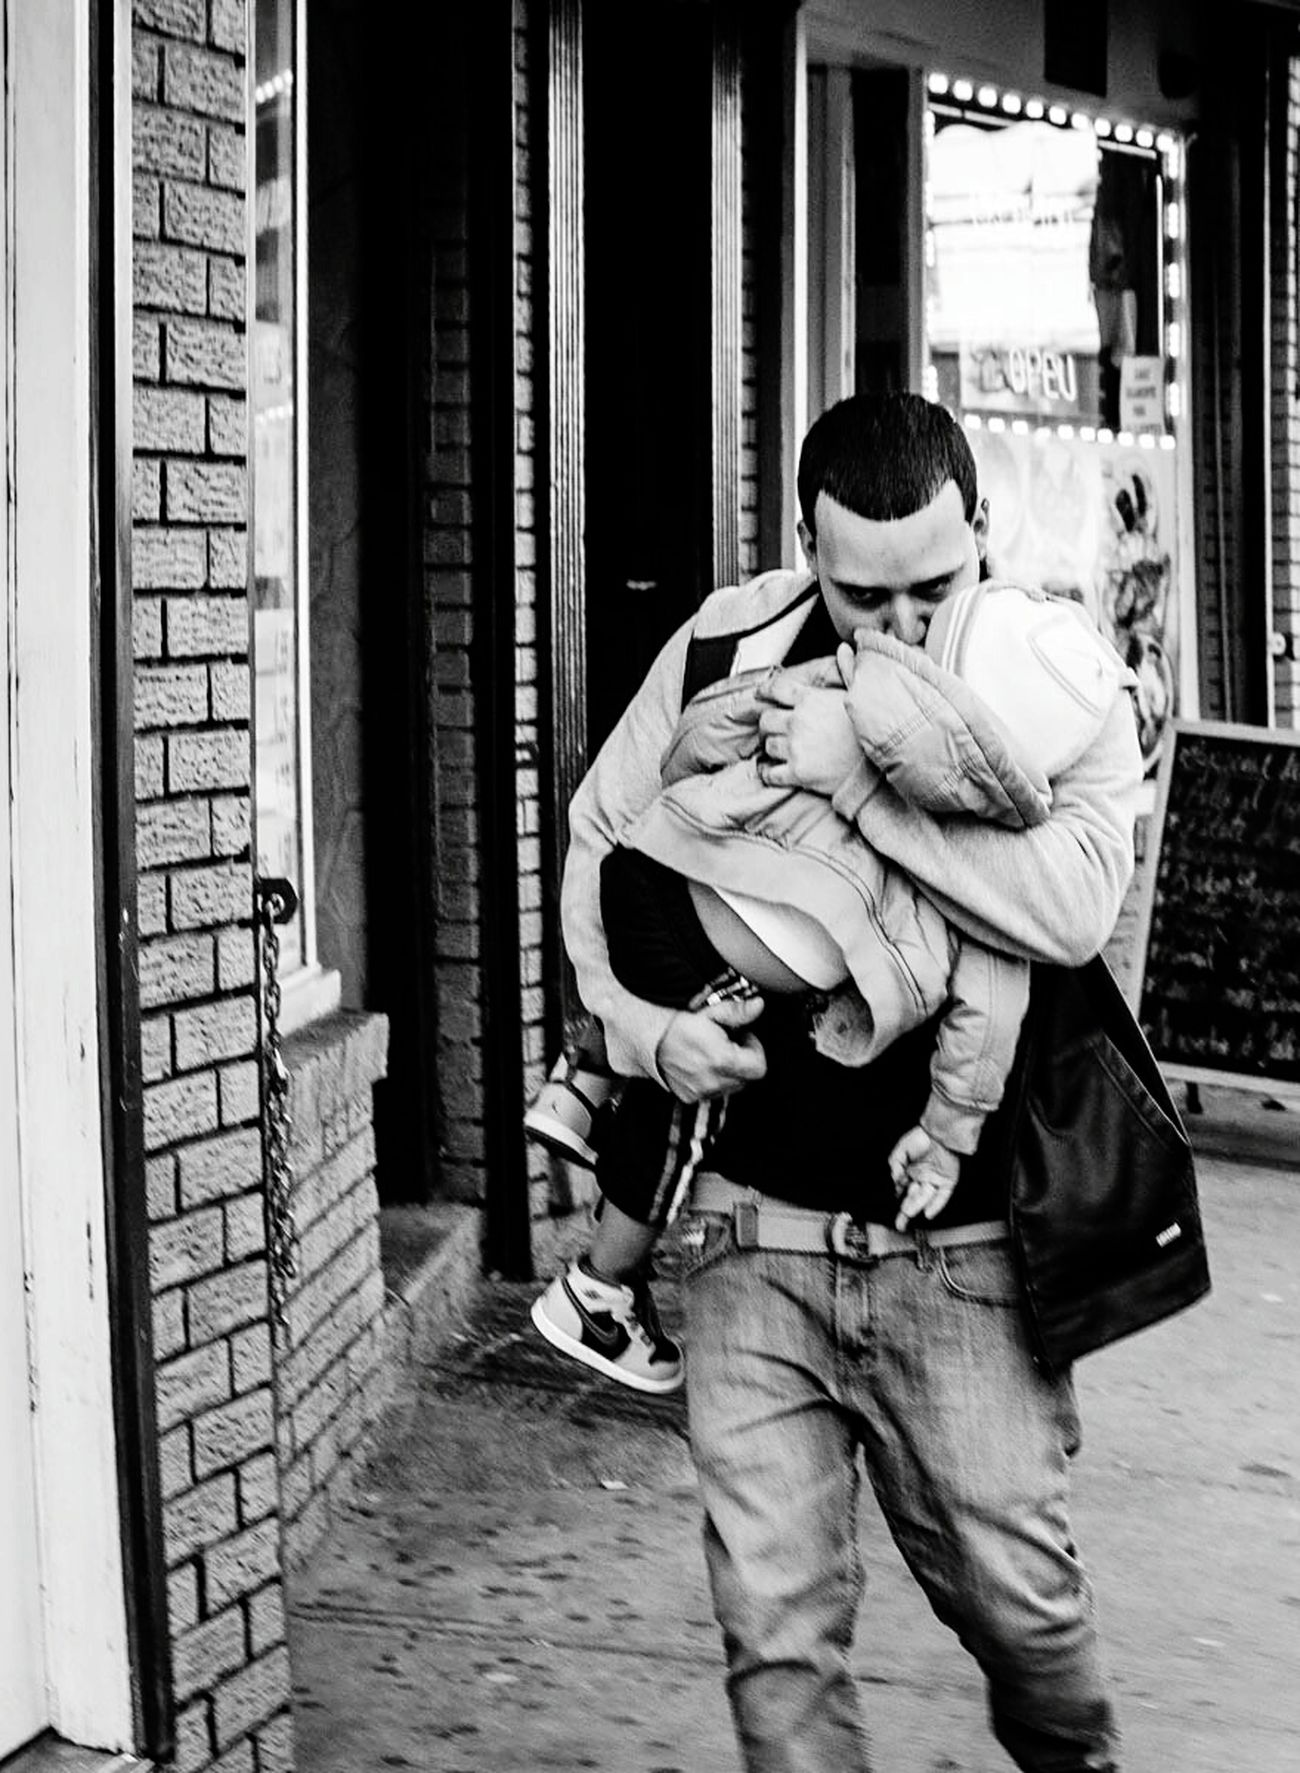 Fathers Day 2016 Taking Photos Streetphotography Photography Everybodystreet Hikaricreative Blackandwhite Check This Out Street Capture People People Watching Portrait The Street Photographer - 2016 EyeEm Awards Dadslife Father & Son